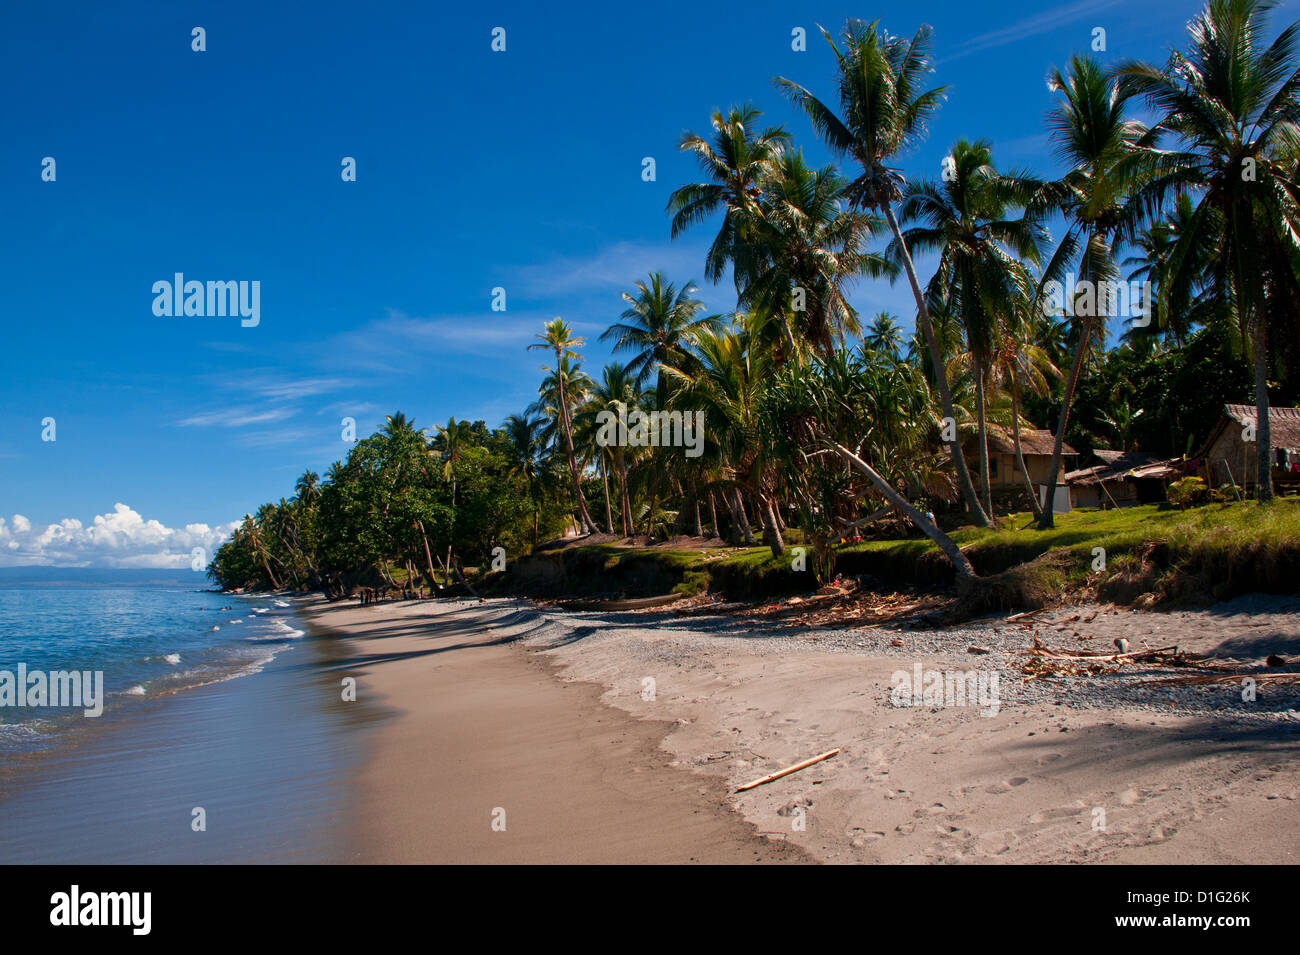 Tropical beach, Solomon Islands, Pacific - Stock Image